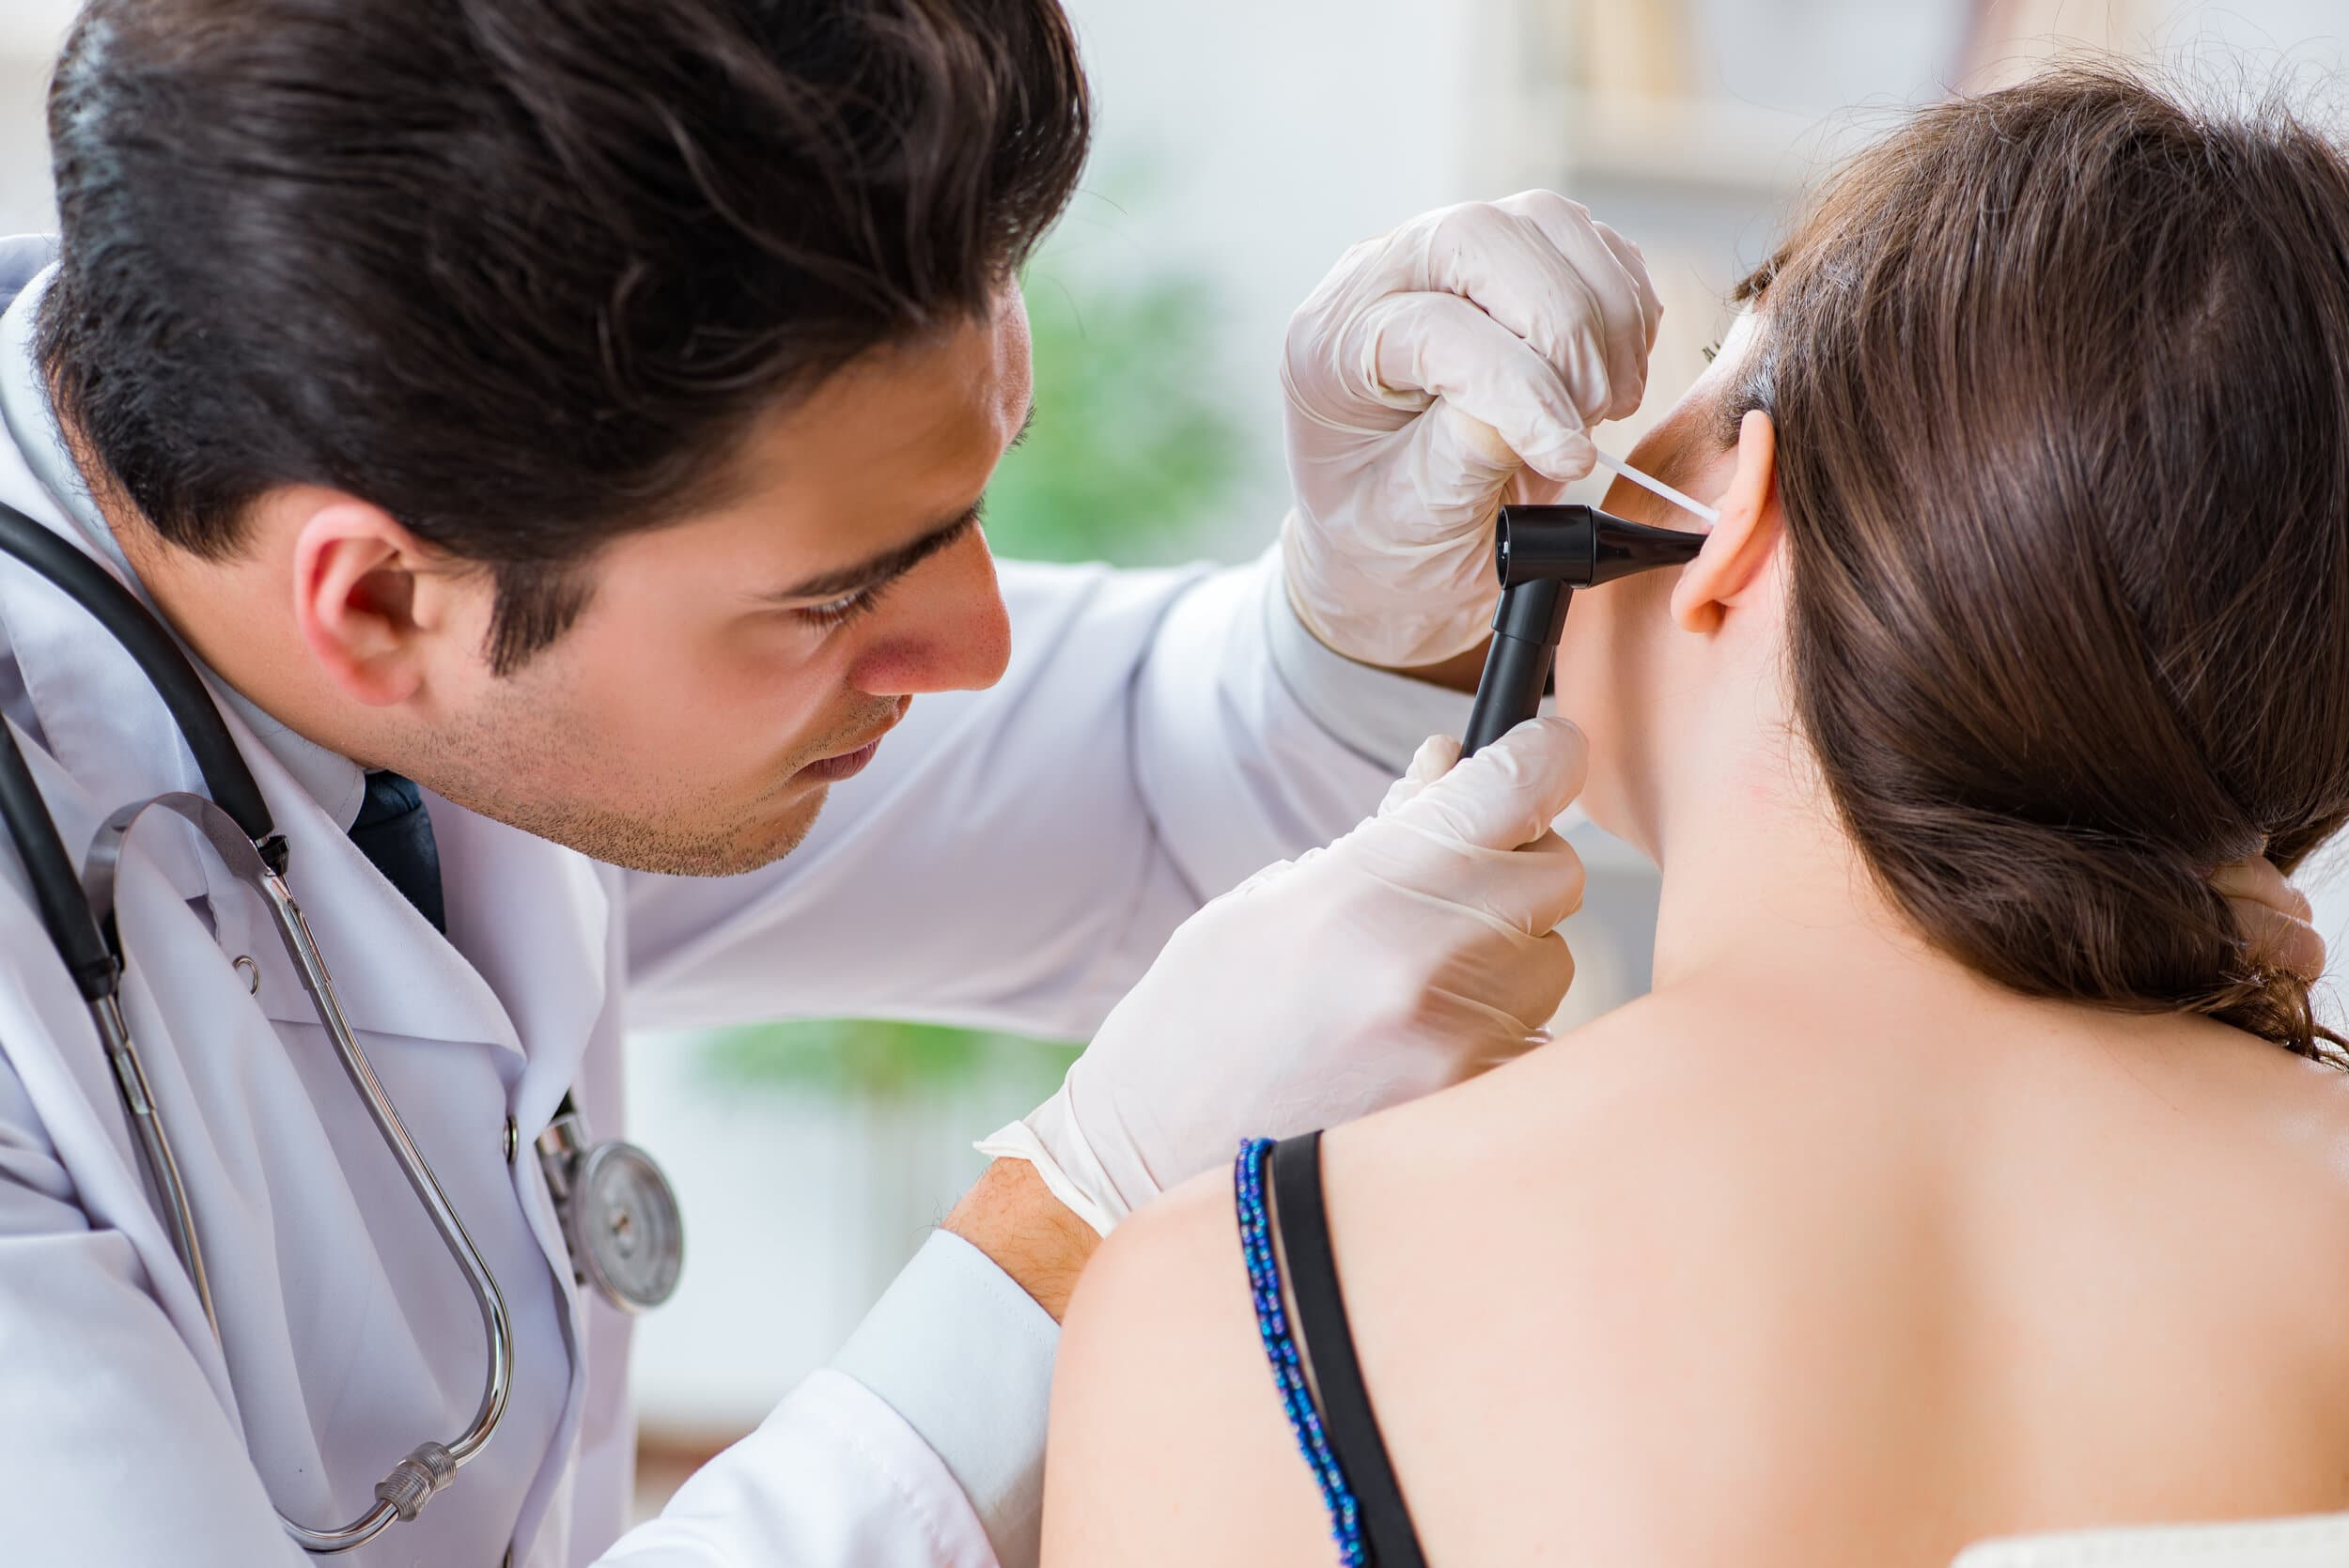 doctor looking at patients ear